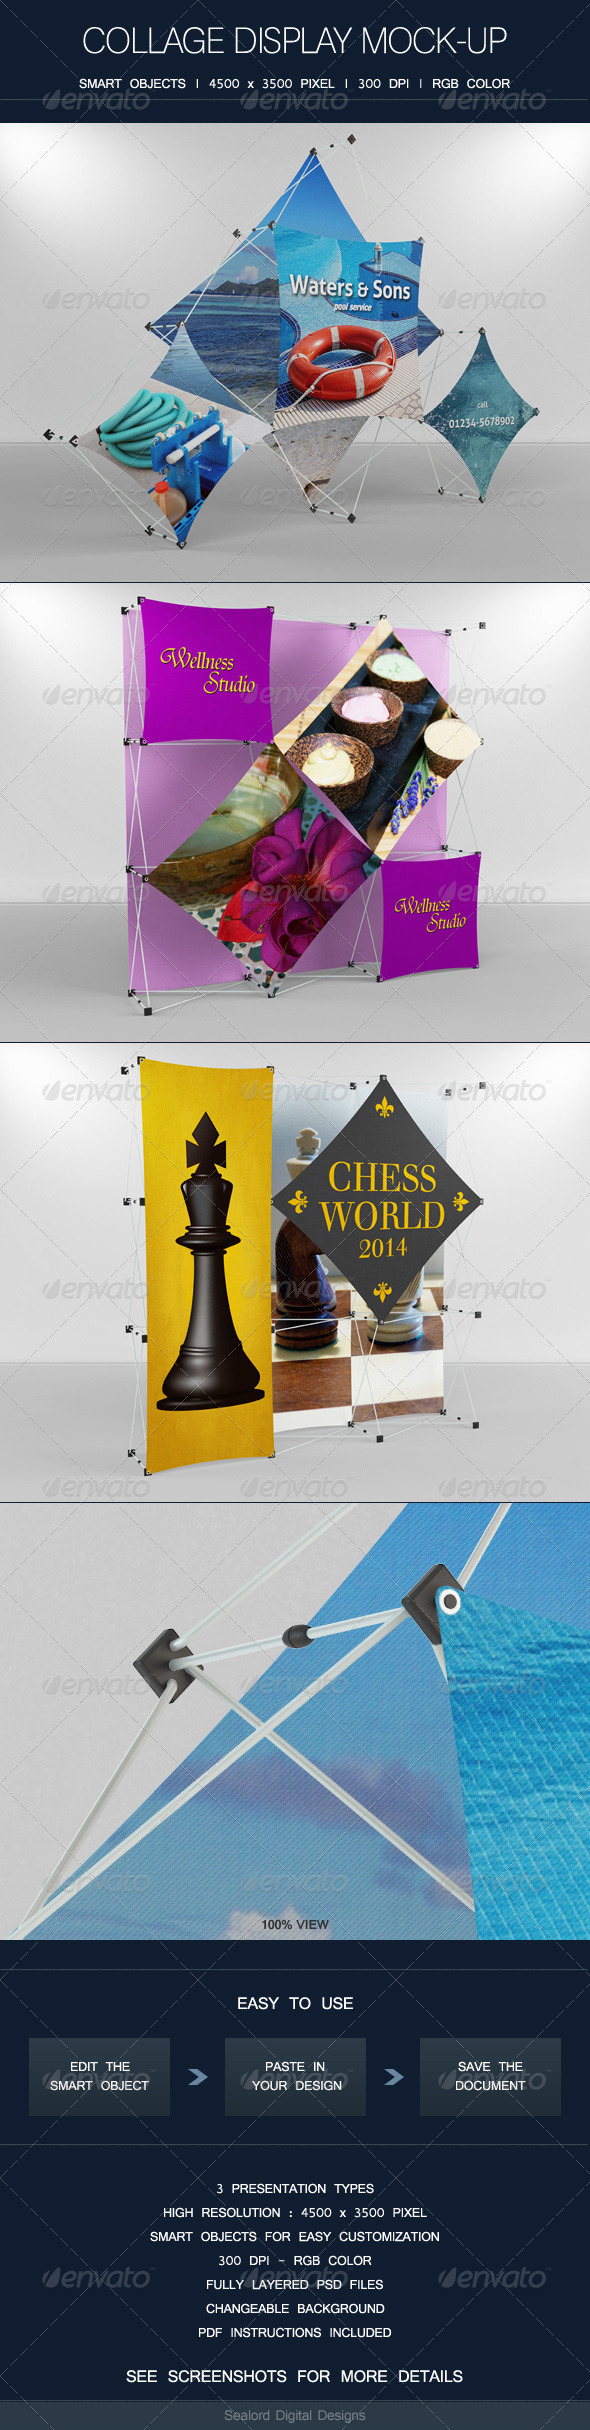 GraphicRiver Collage Display Mock-up 8111691